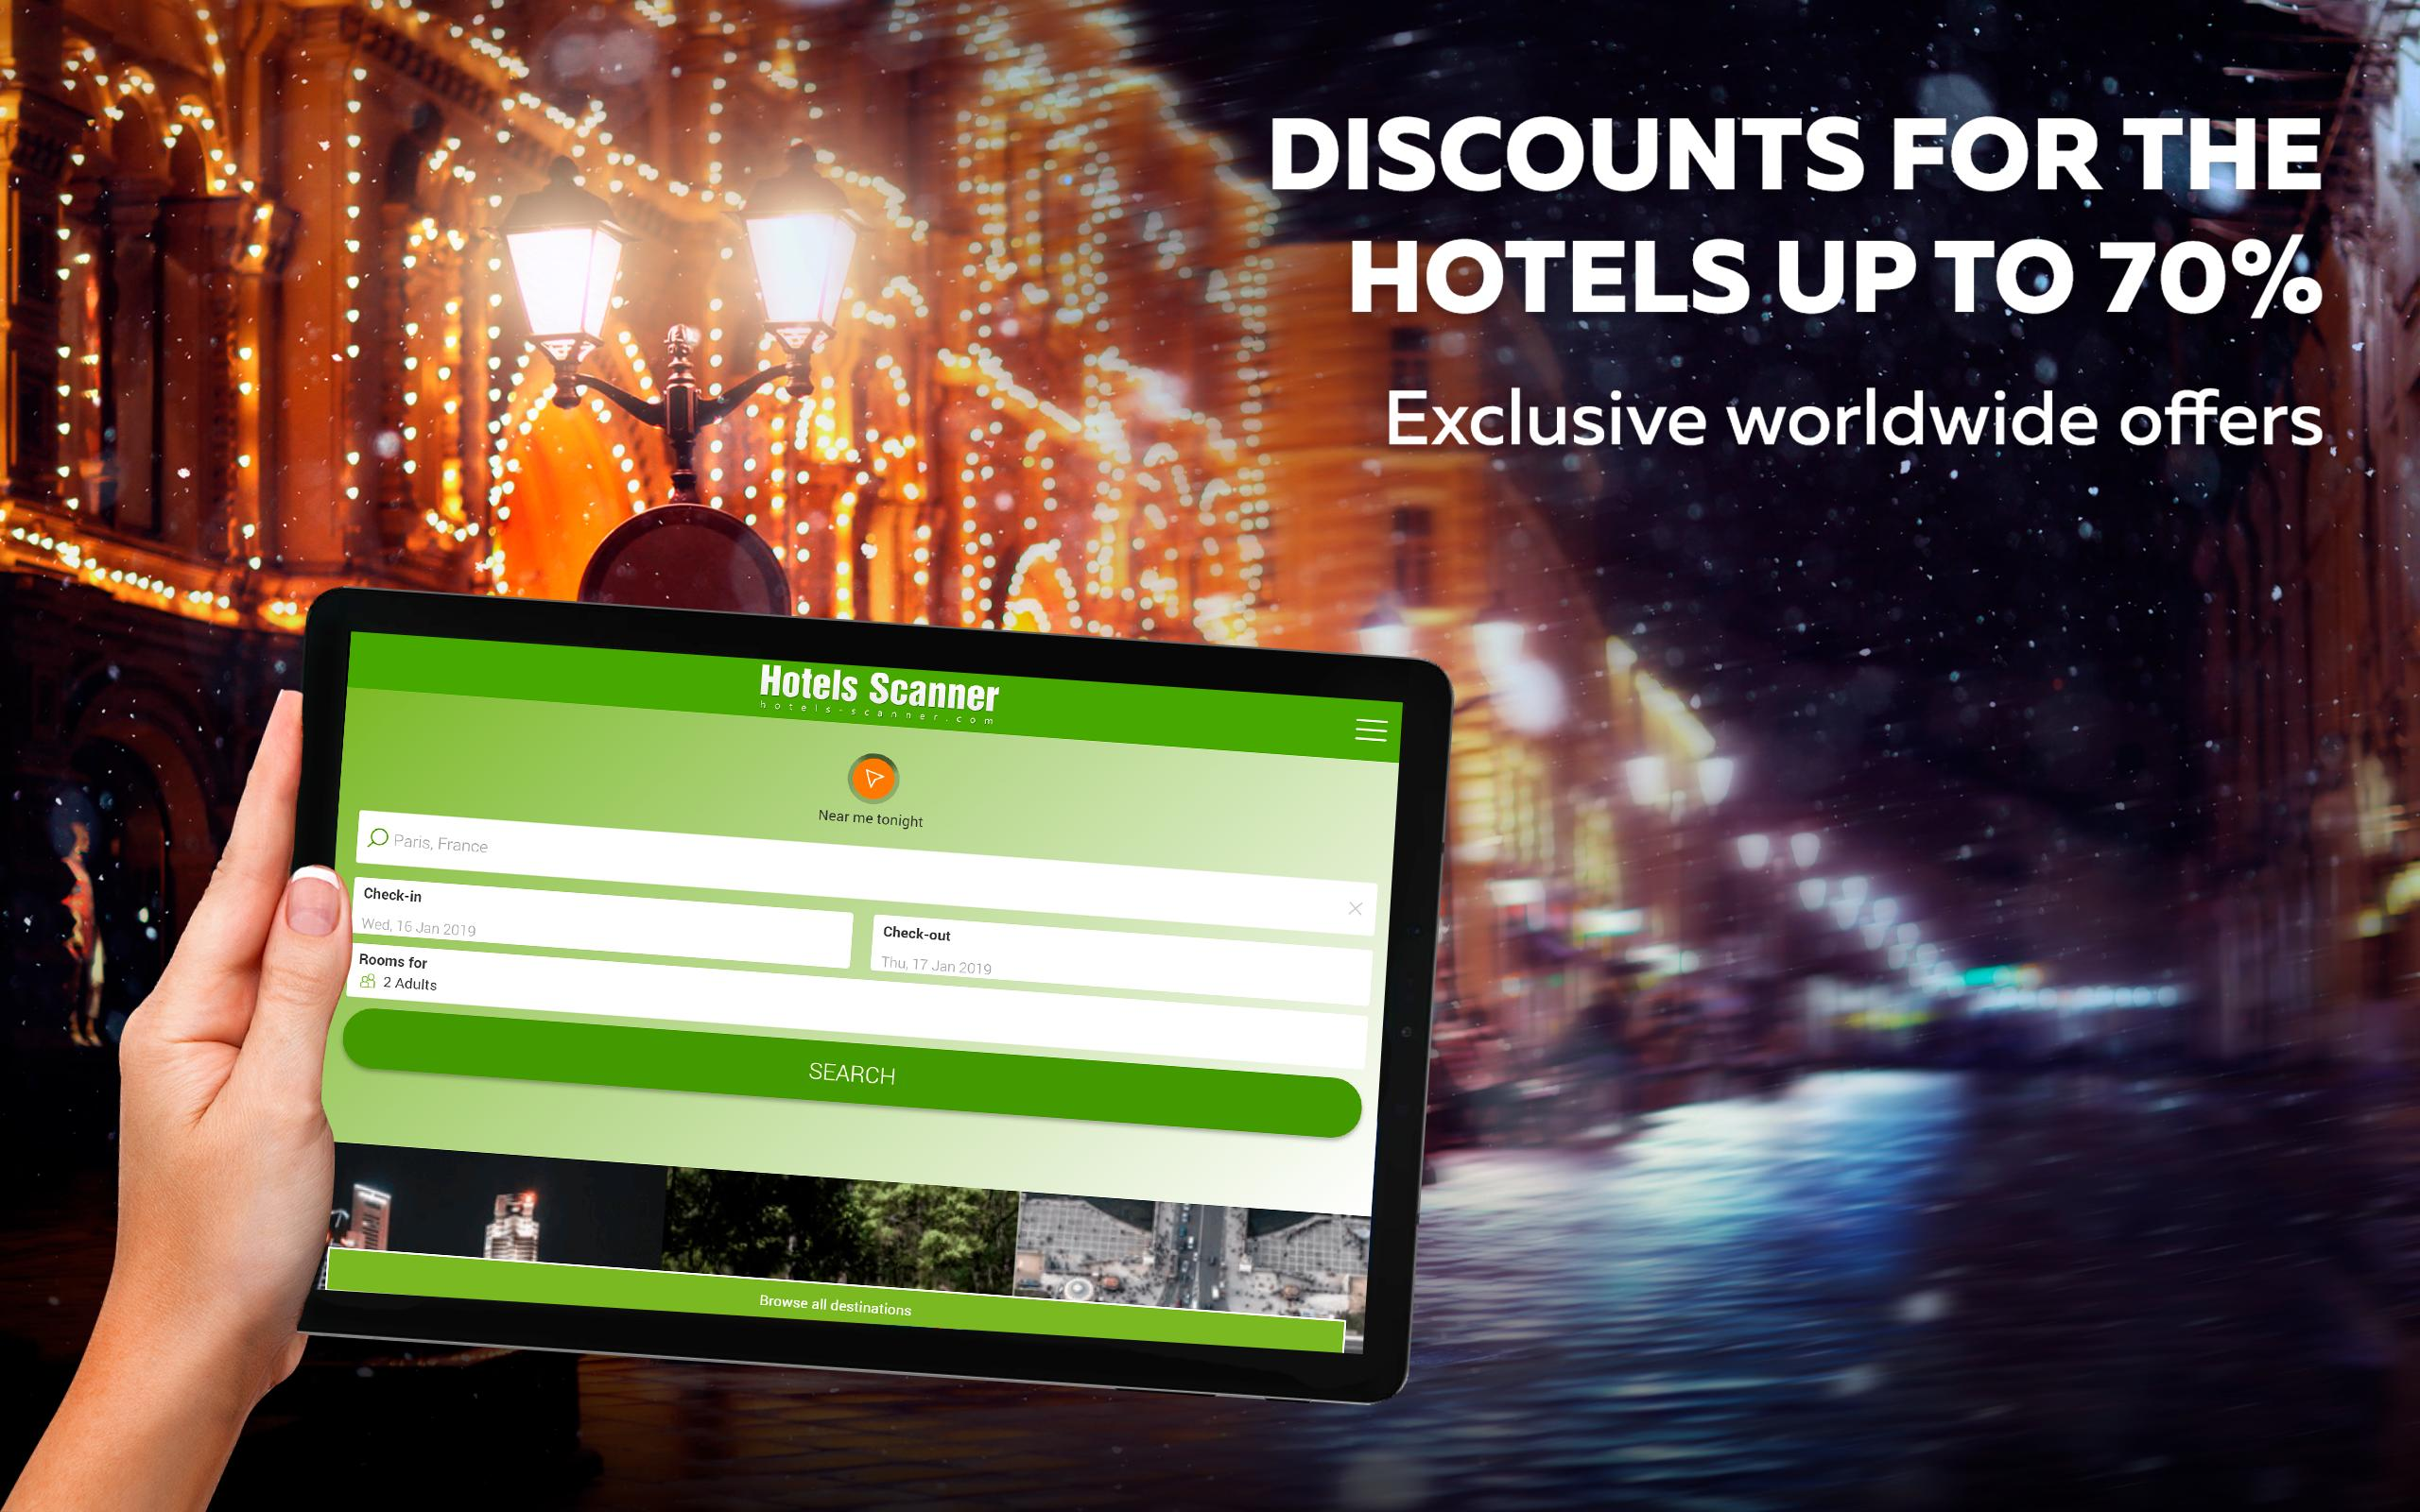 Hotels Scanner - Find the best hotel offers for Android